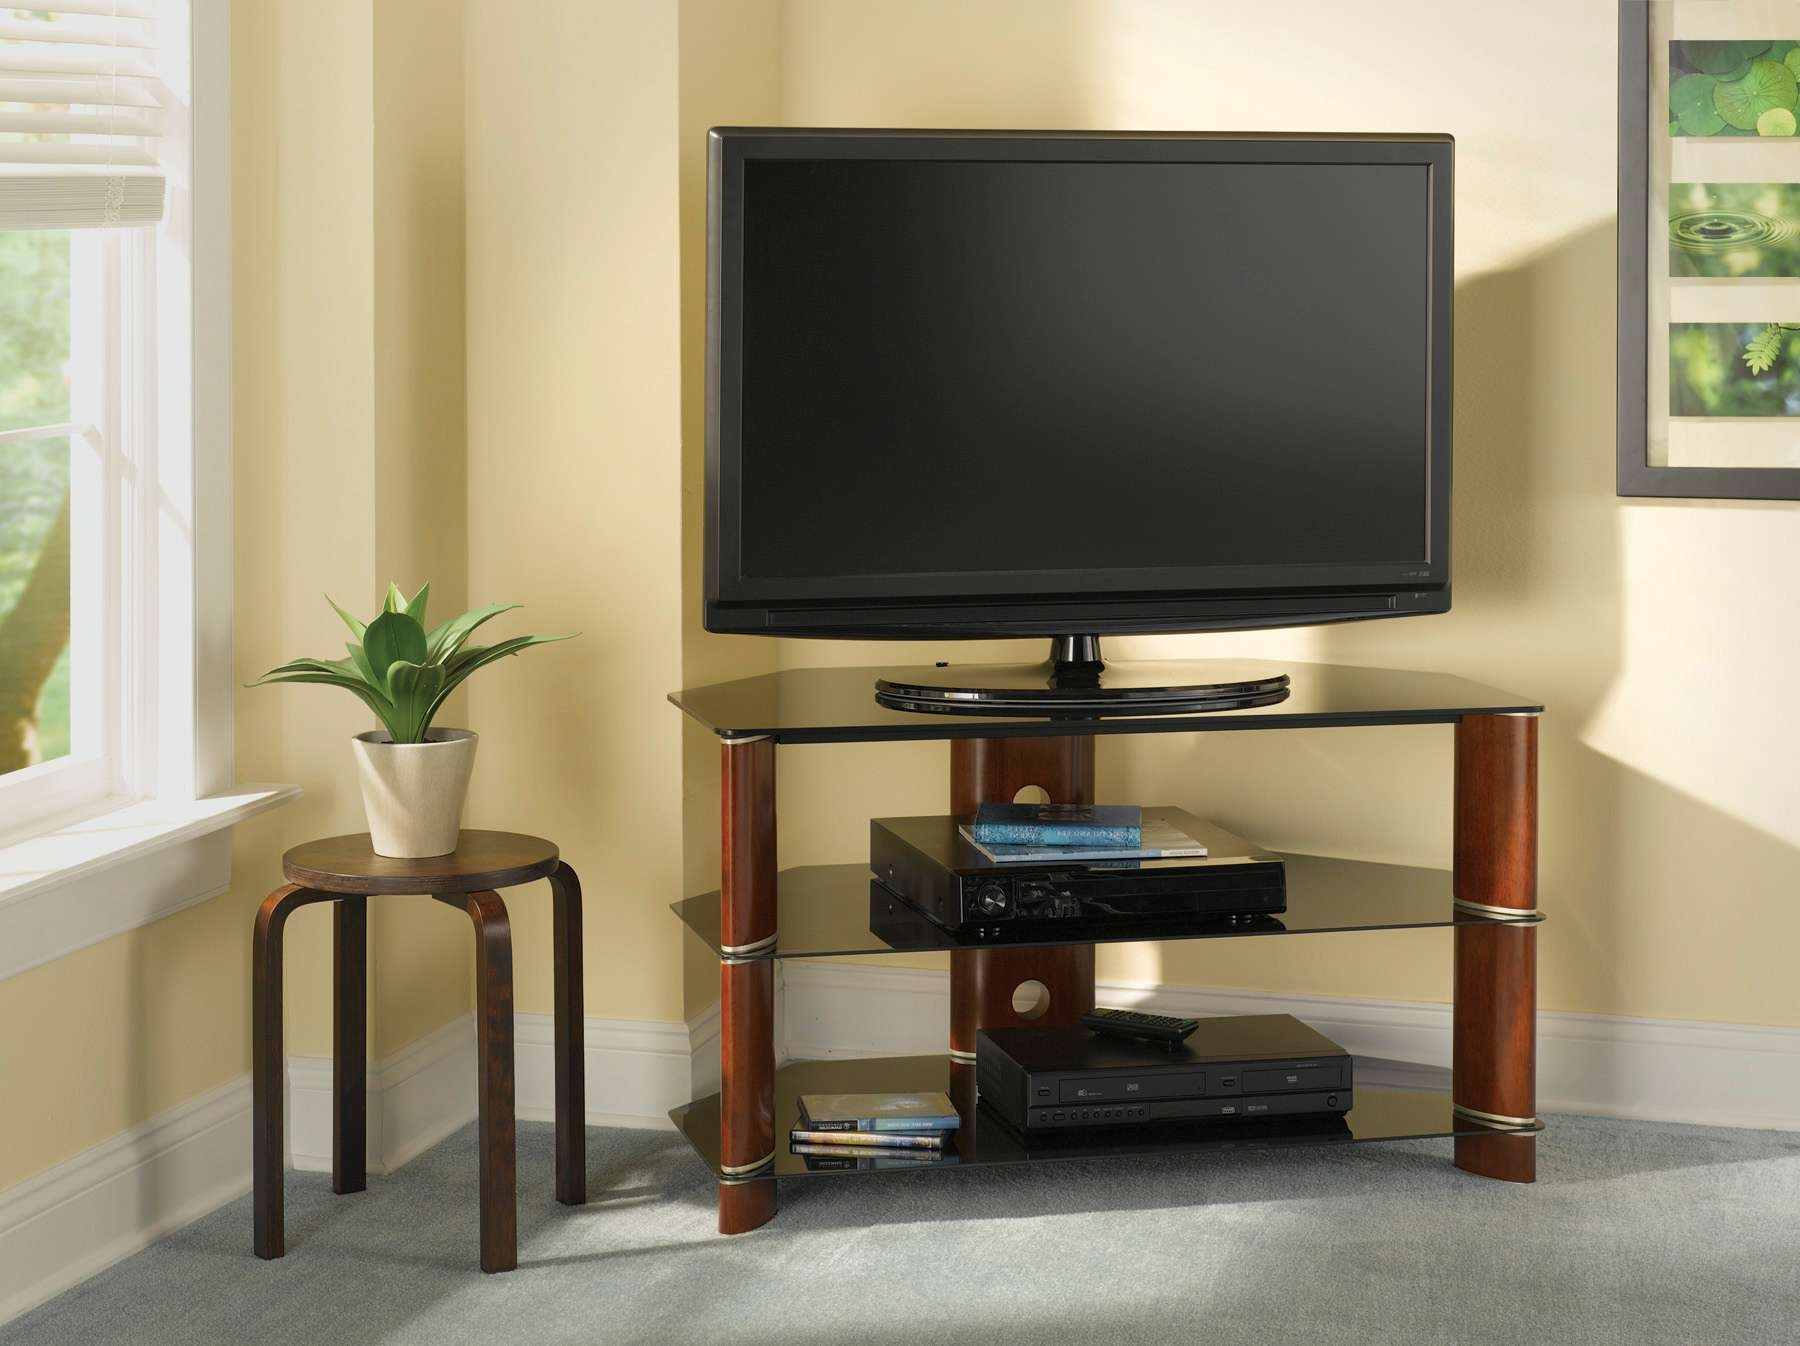 Outstanding Modern Corner Tv Stand And Contemporary Trends Images Regarding Tv Stands For Corners (Gallery 15 of 15)